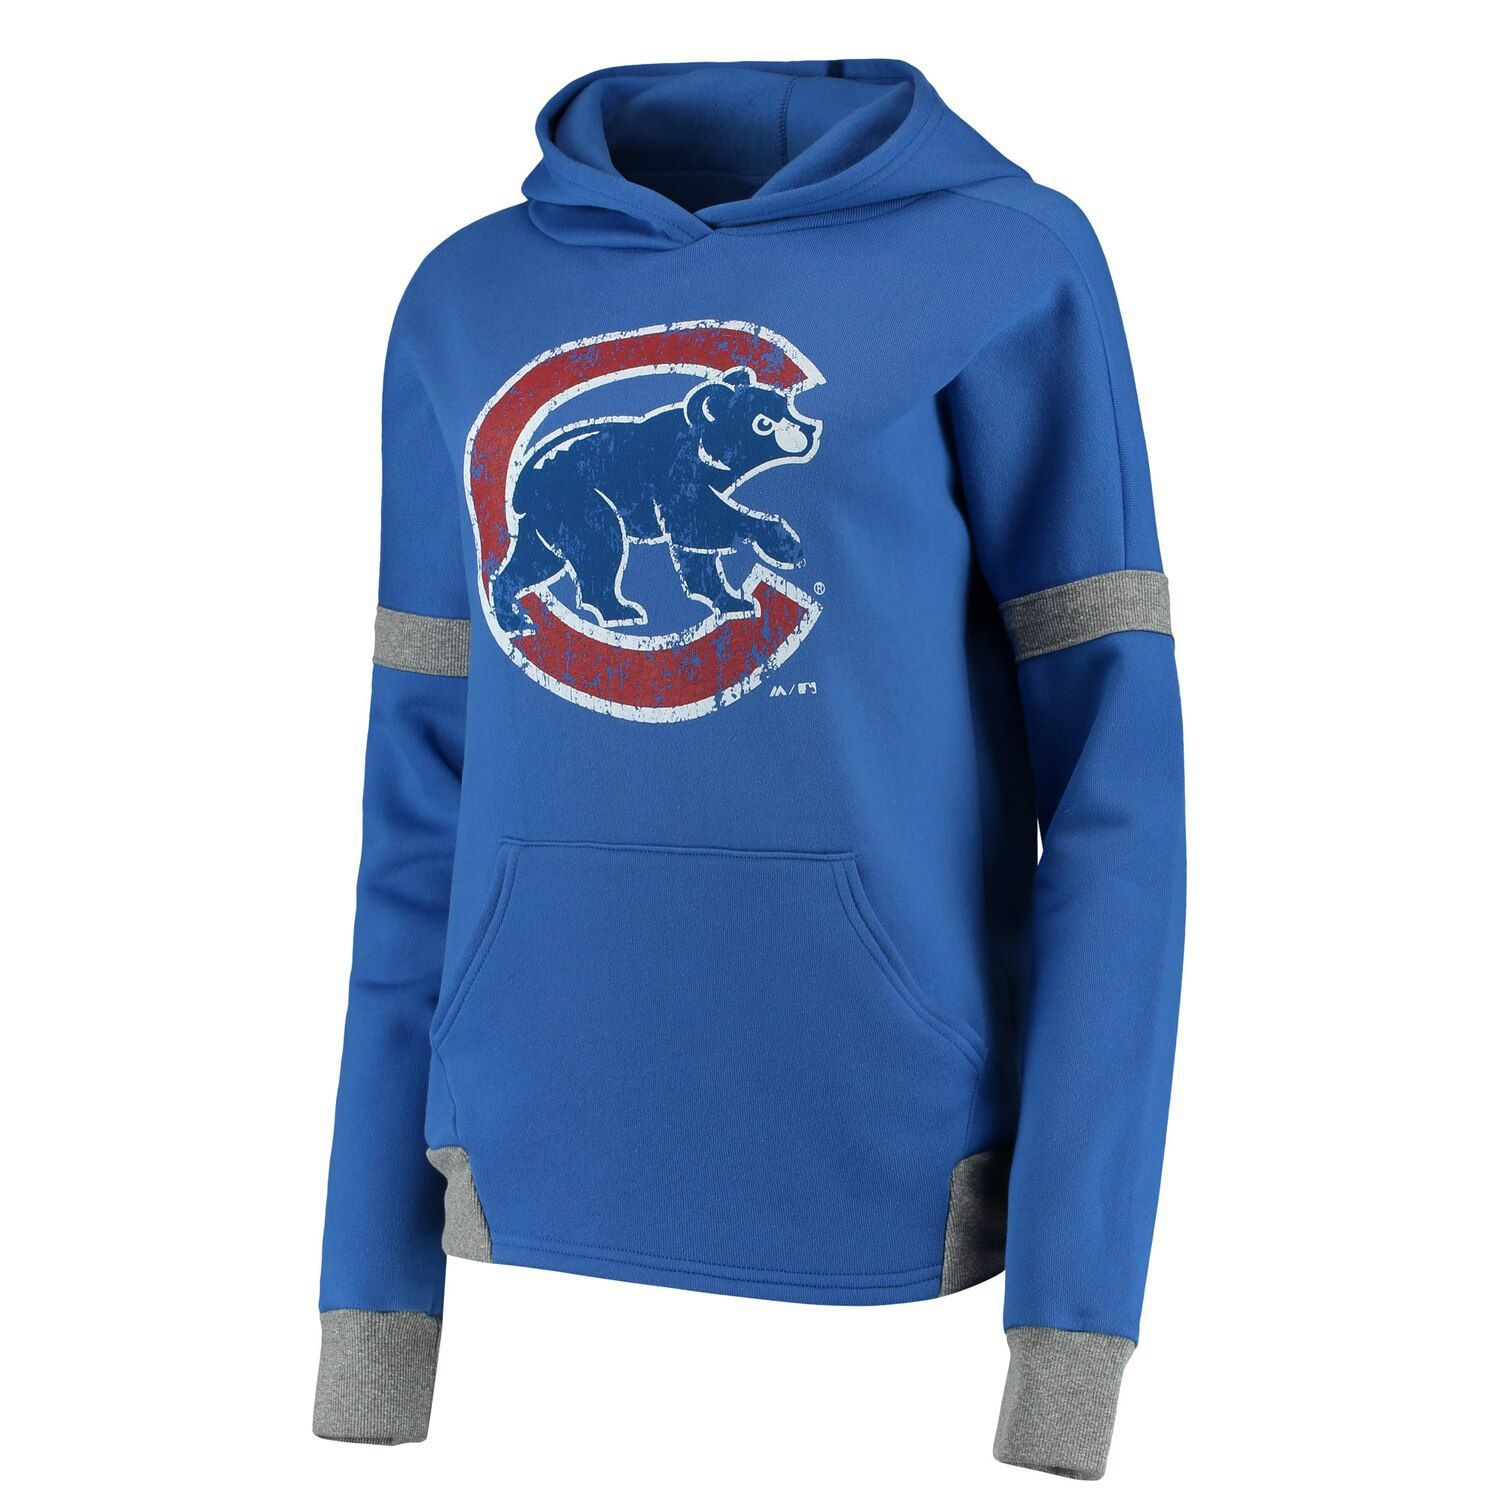 Women S Majestic Threads Royal Gray Chicago Cubs Iconic Fleece Pullover Hoodie Fleece Pullover Hoodies Pullover Hoodie [ 1500 x 1500 Pixel ]